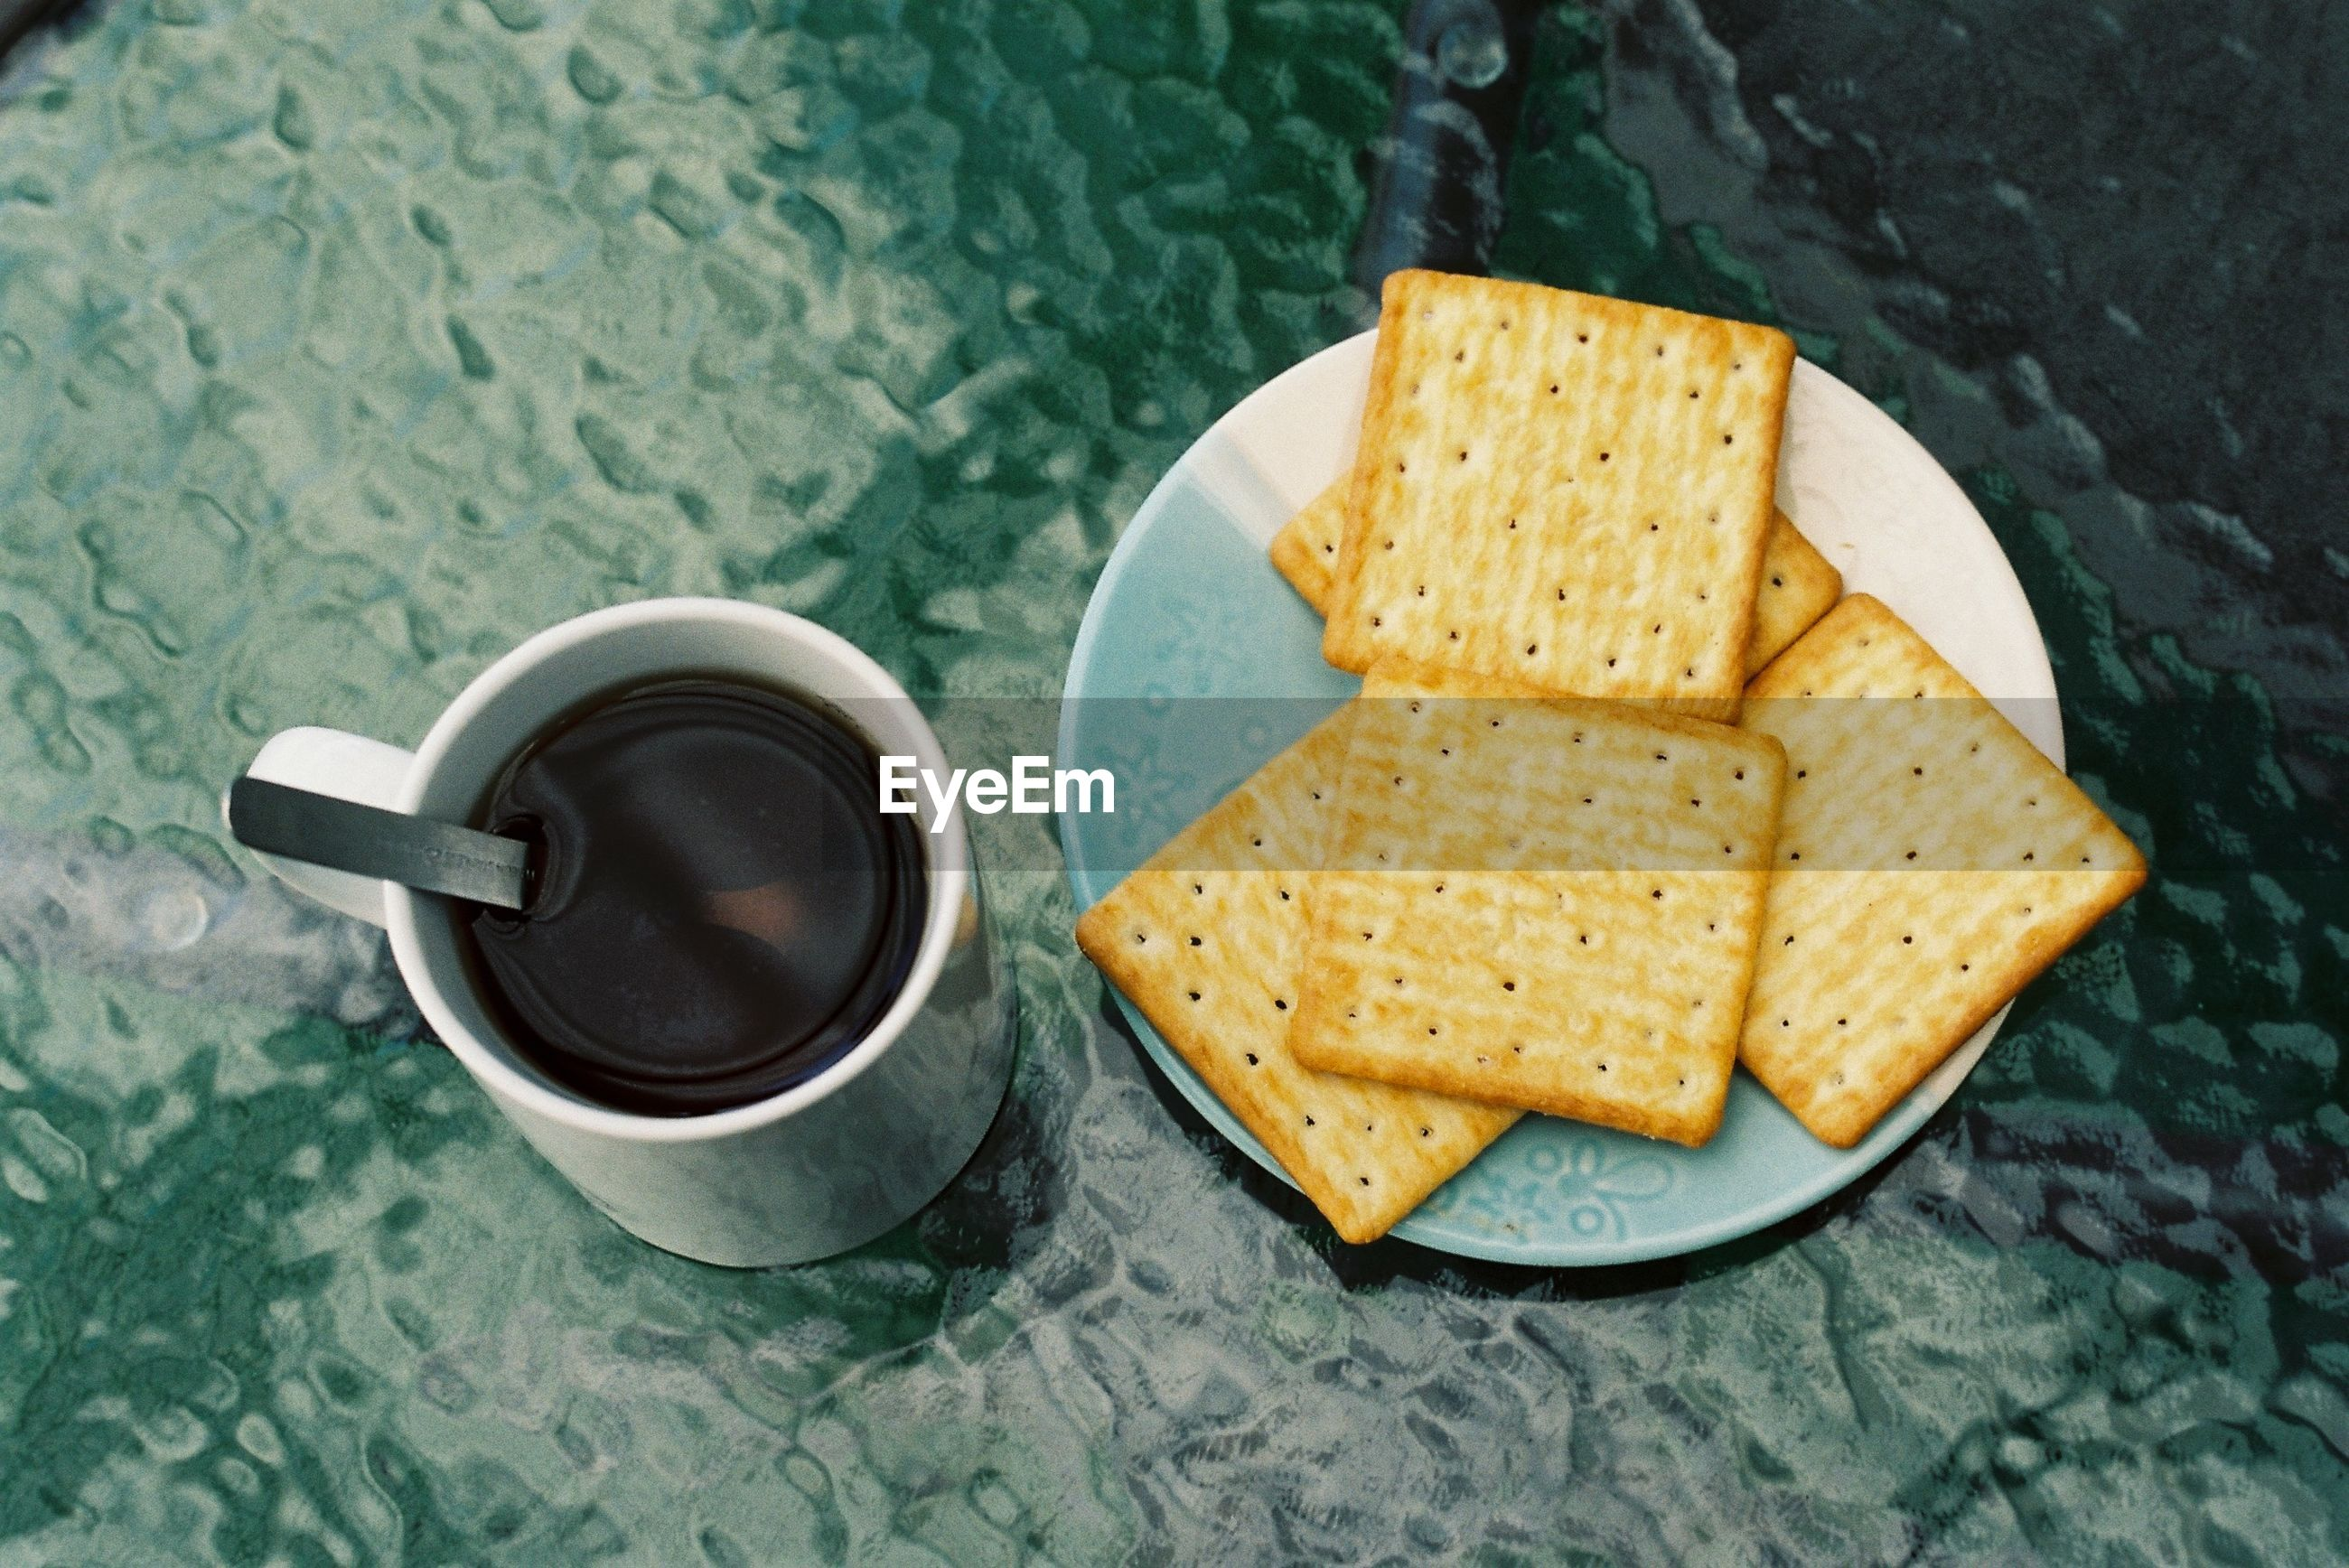 HIGH ANGLE VIEW OF BREAKFAST WITH COFFEE CUP